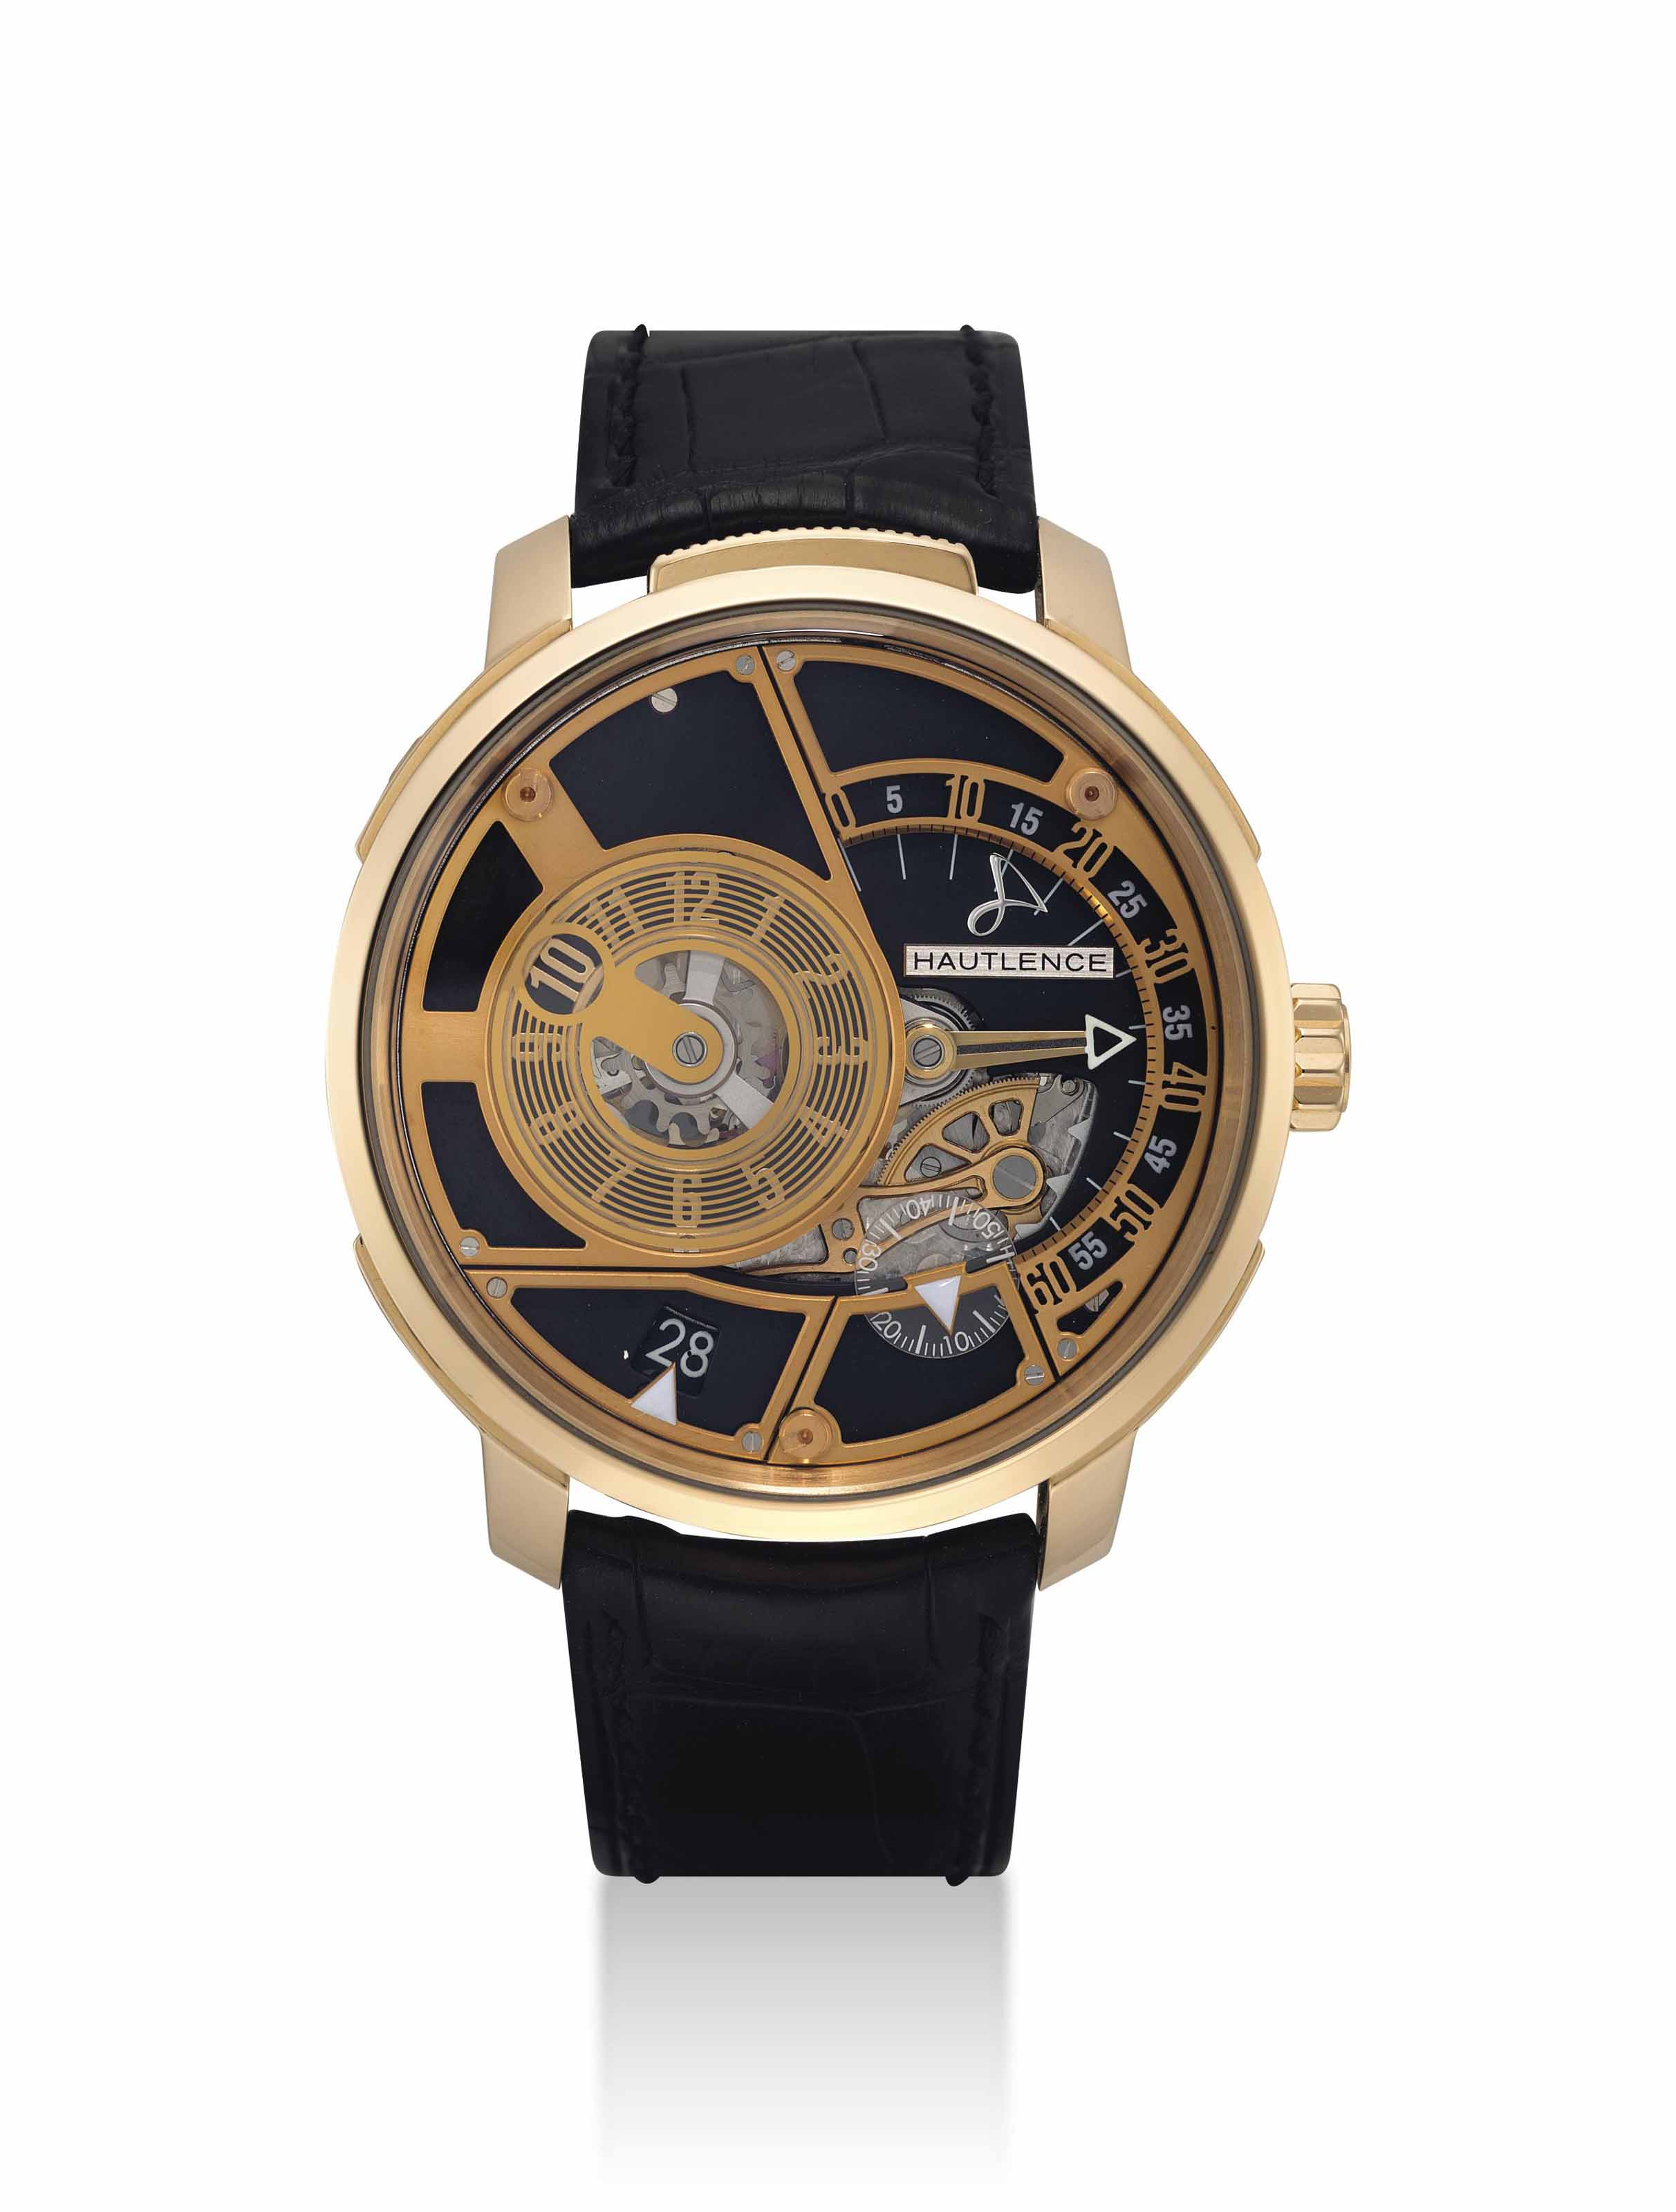 HAUTLENCE. AN 18K PINK GOLD LIMITED EDITION JUMP HOUR WRISTWATCH WITH RETROGRADE MINUTES AND DATE